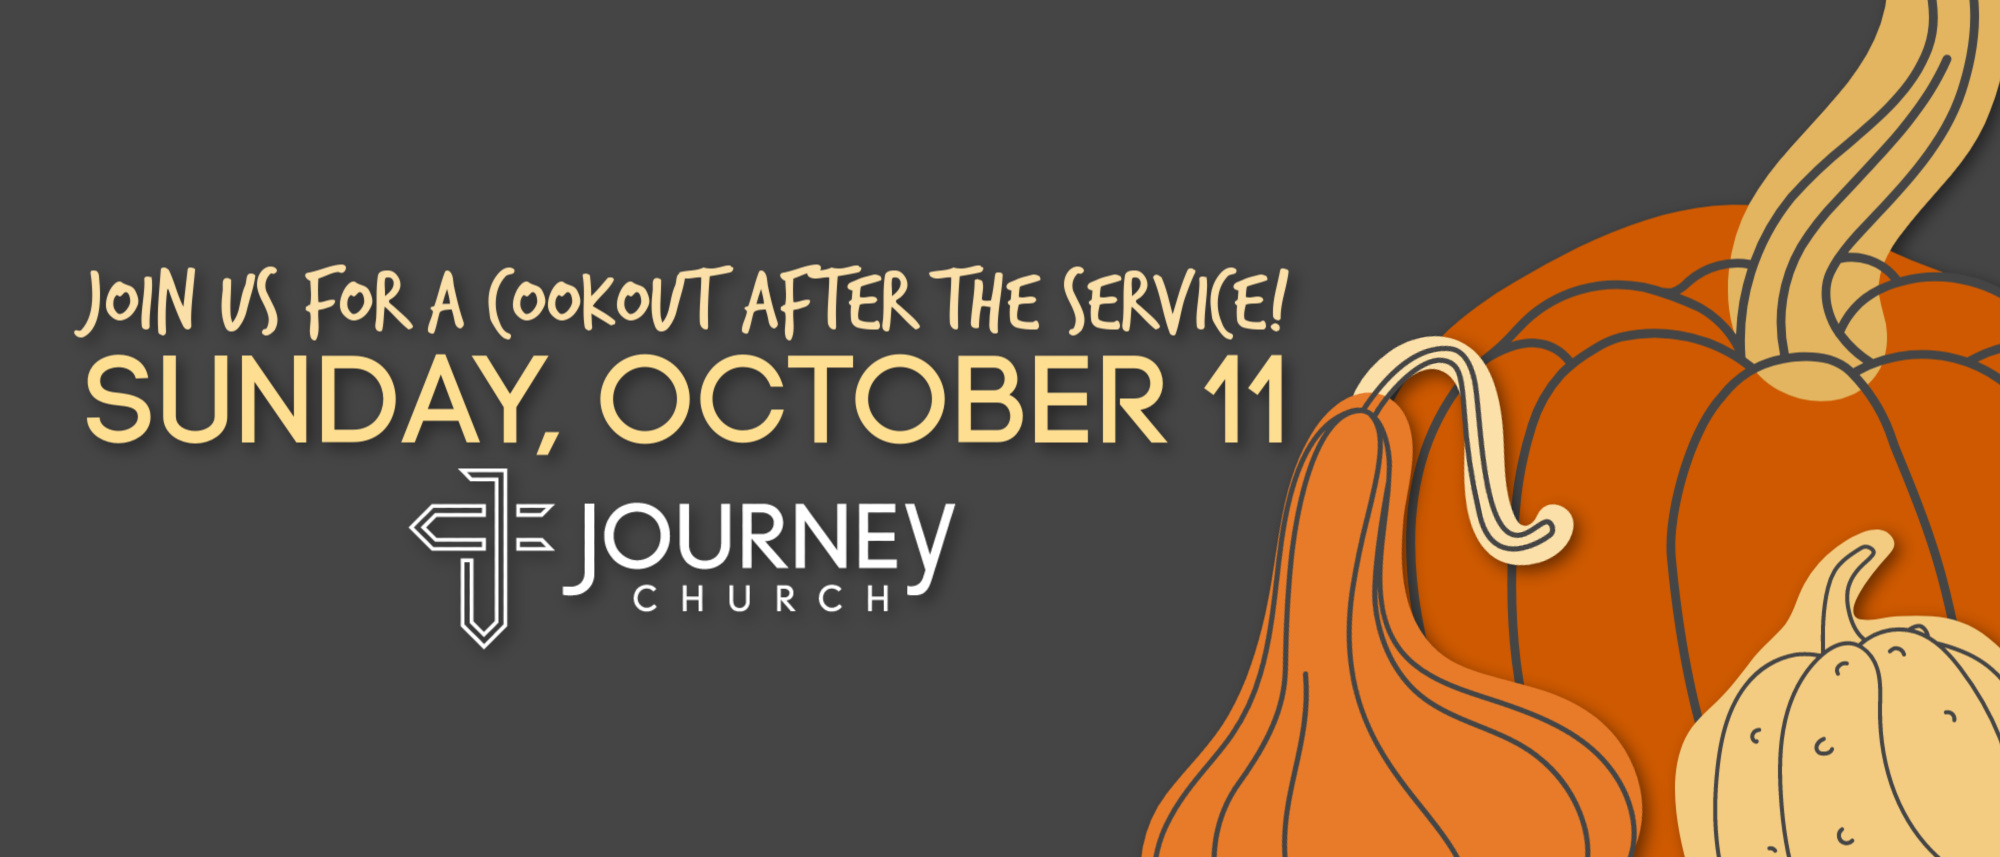 Join us for a FREE cookout on Sunday, October 11th. Immediately following the service at Journey Church River Falls.